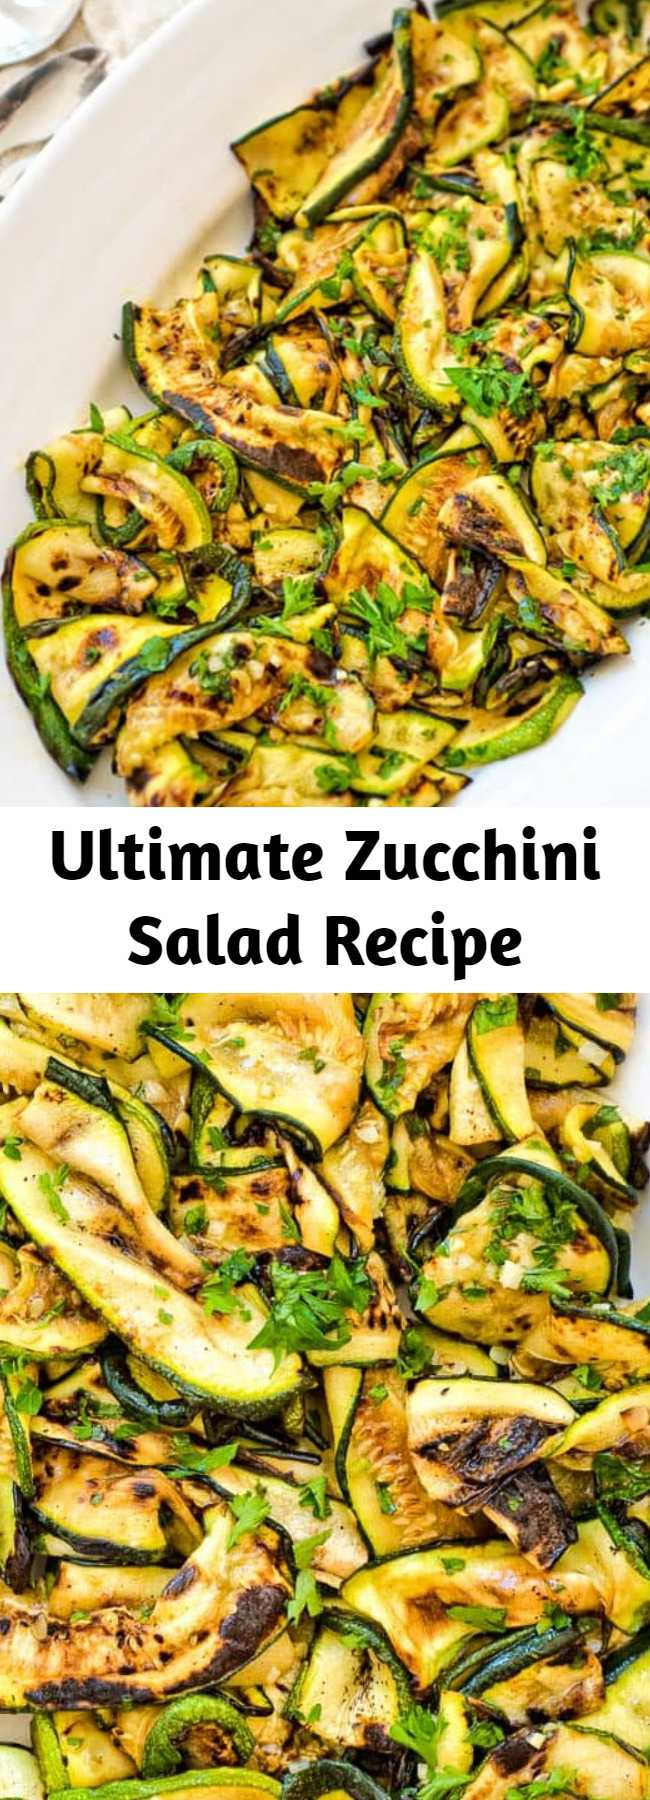 Ultimate Zucchini Salad Recipe - This Roasted Zucchini Salad is so flavorful and healthy, you'll want to make it over and over again! Seasoned with lemon-parsley dressing, it requires only 5 ingredients! #zucchini #vegan #healthy #salad